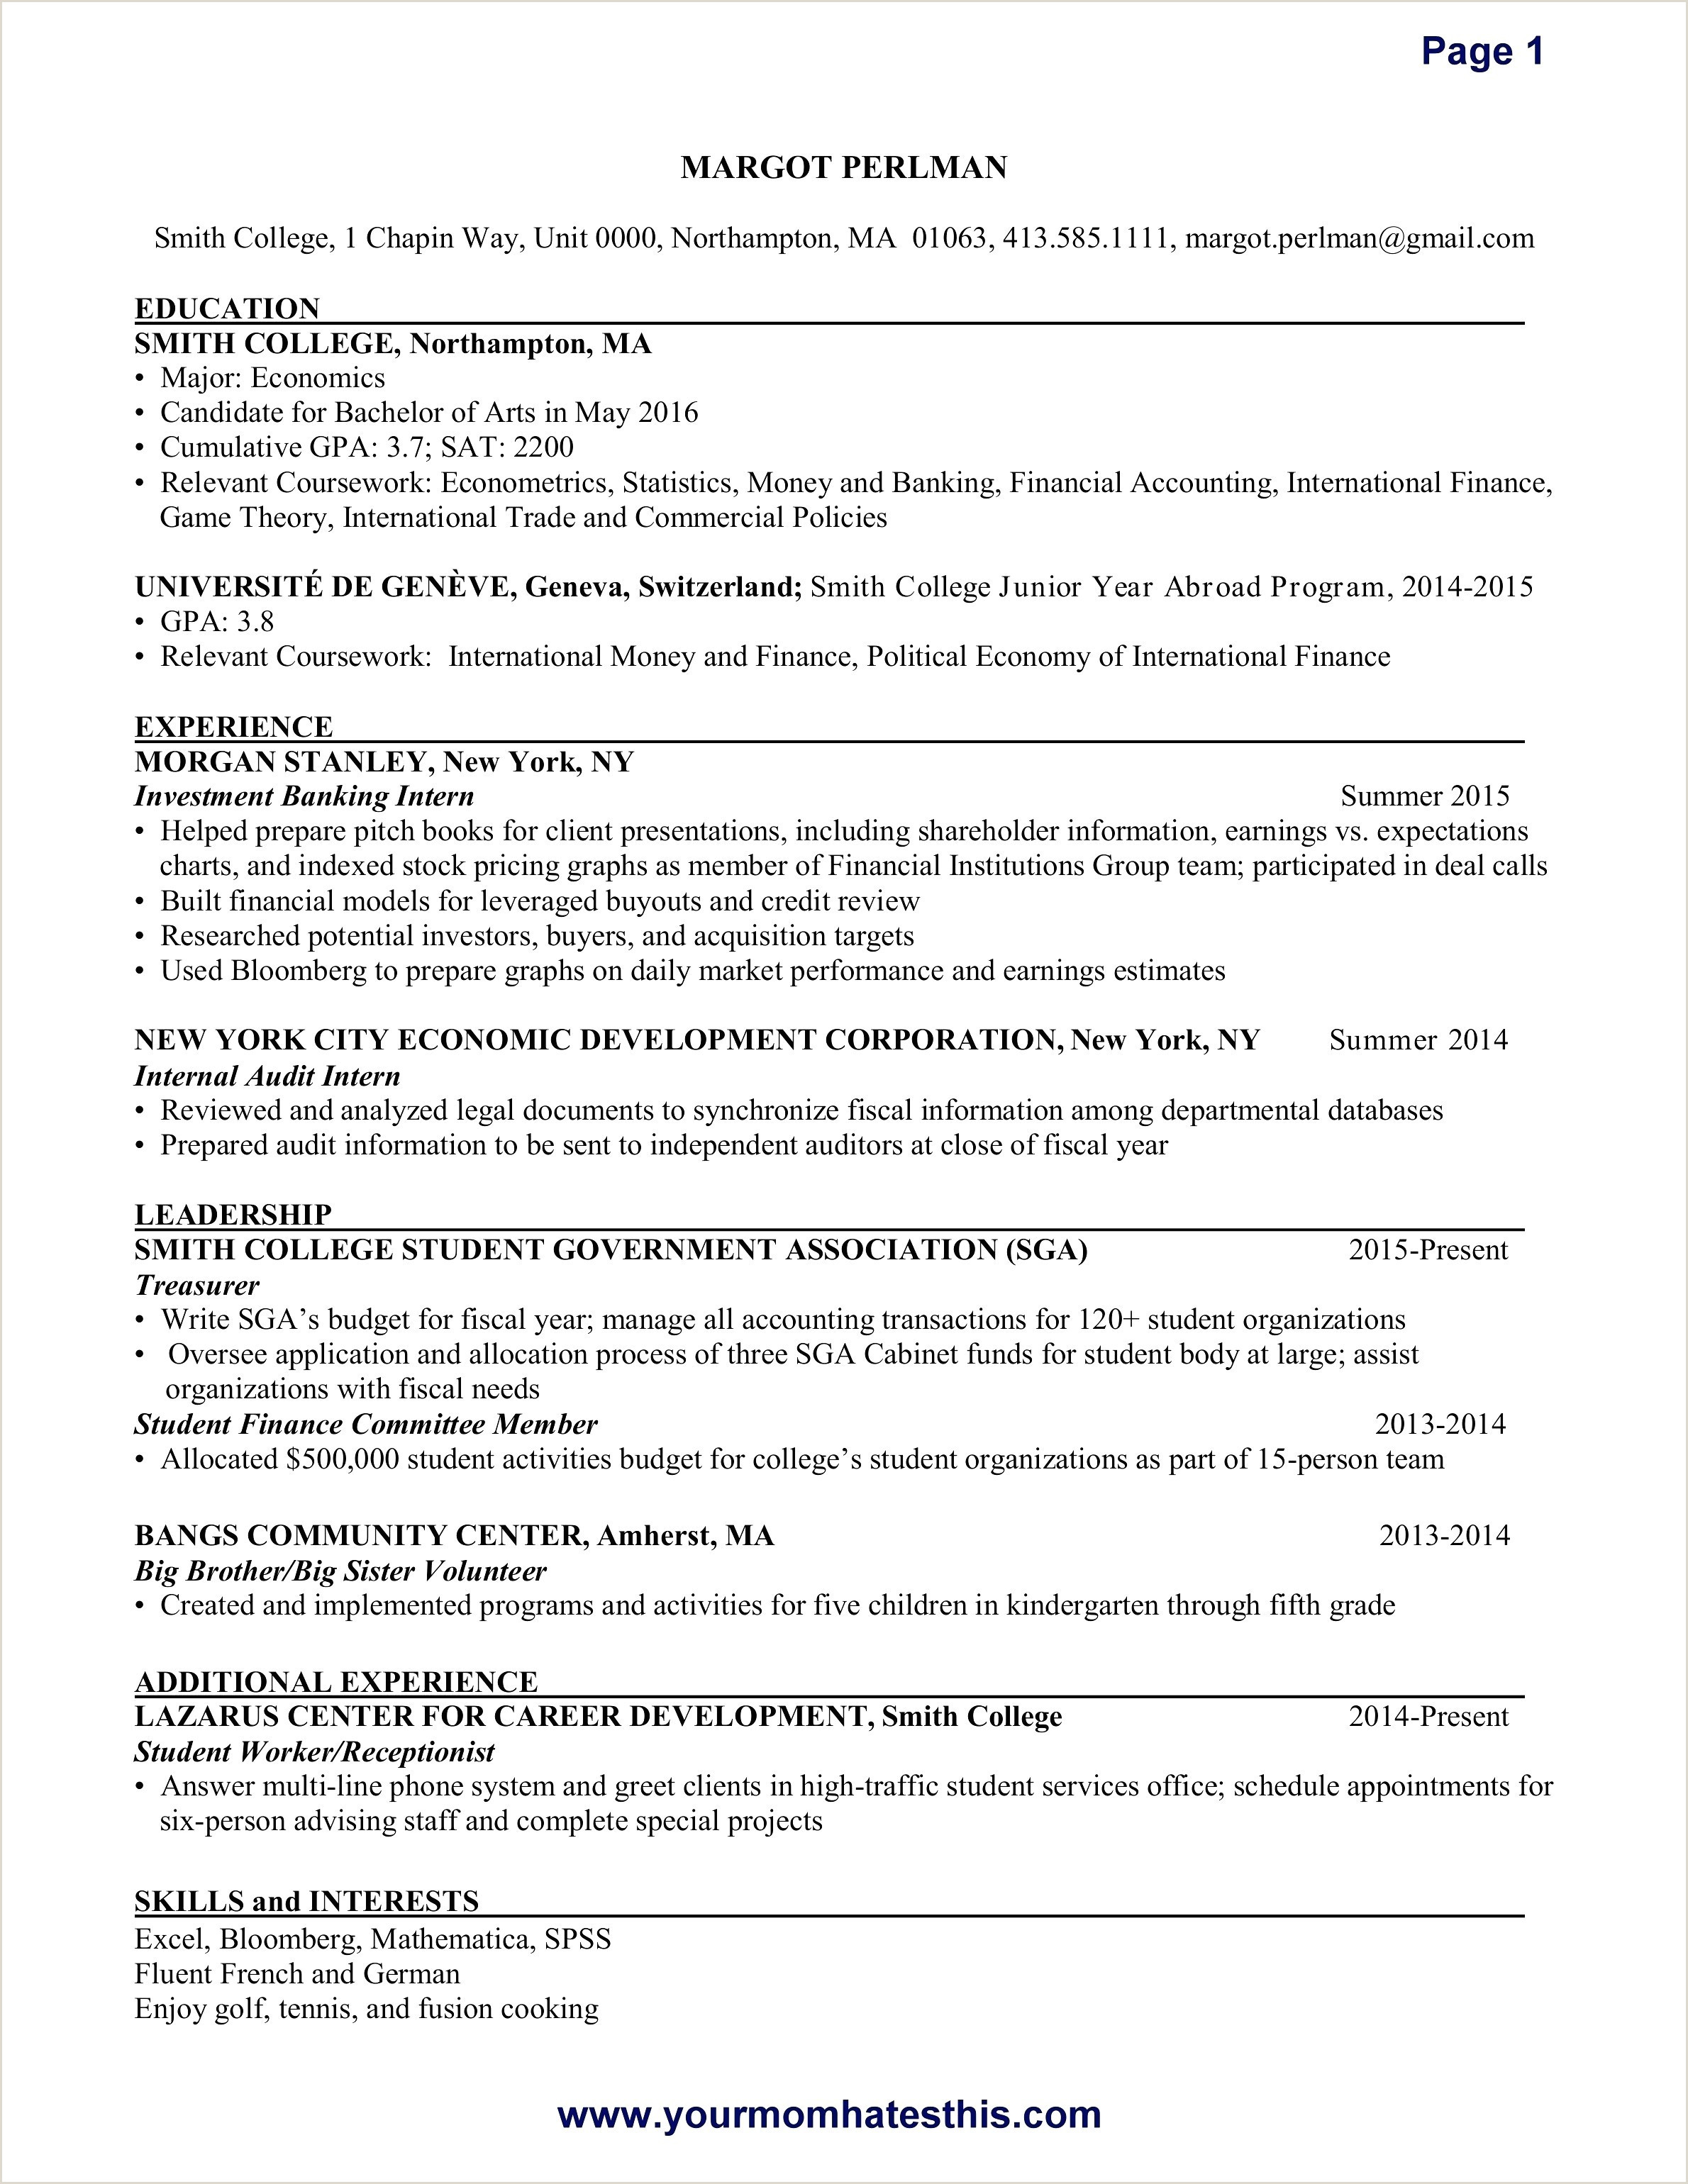 Legal assistant Cv 11 Dental assistant Resume Examples Ideas